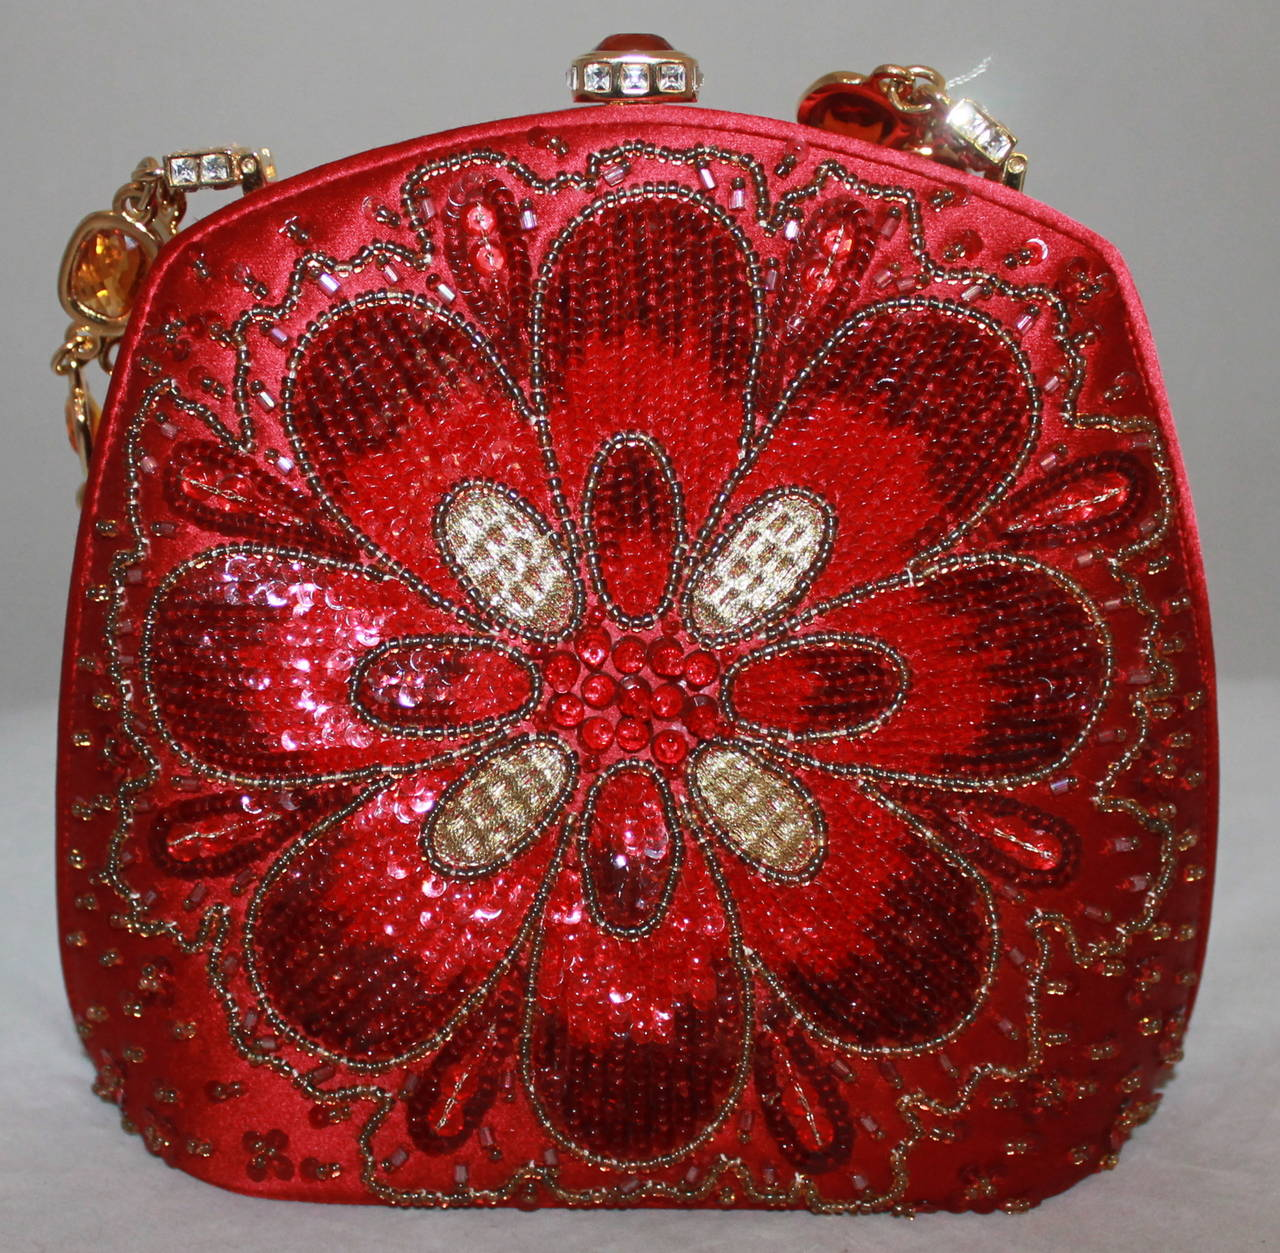 Judith Leiber Vintage Red Satin Beaded Evening Bag with Jeweled Handle 2